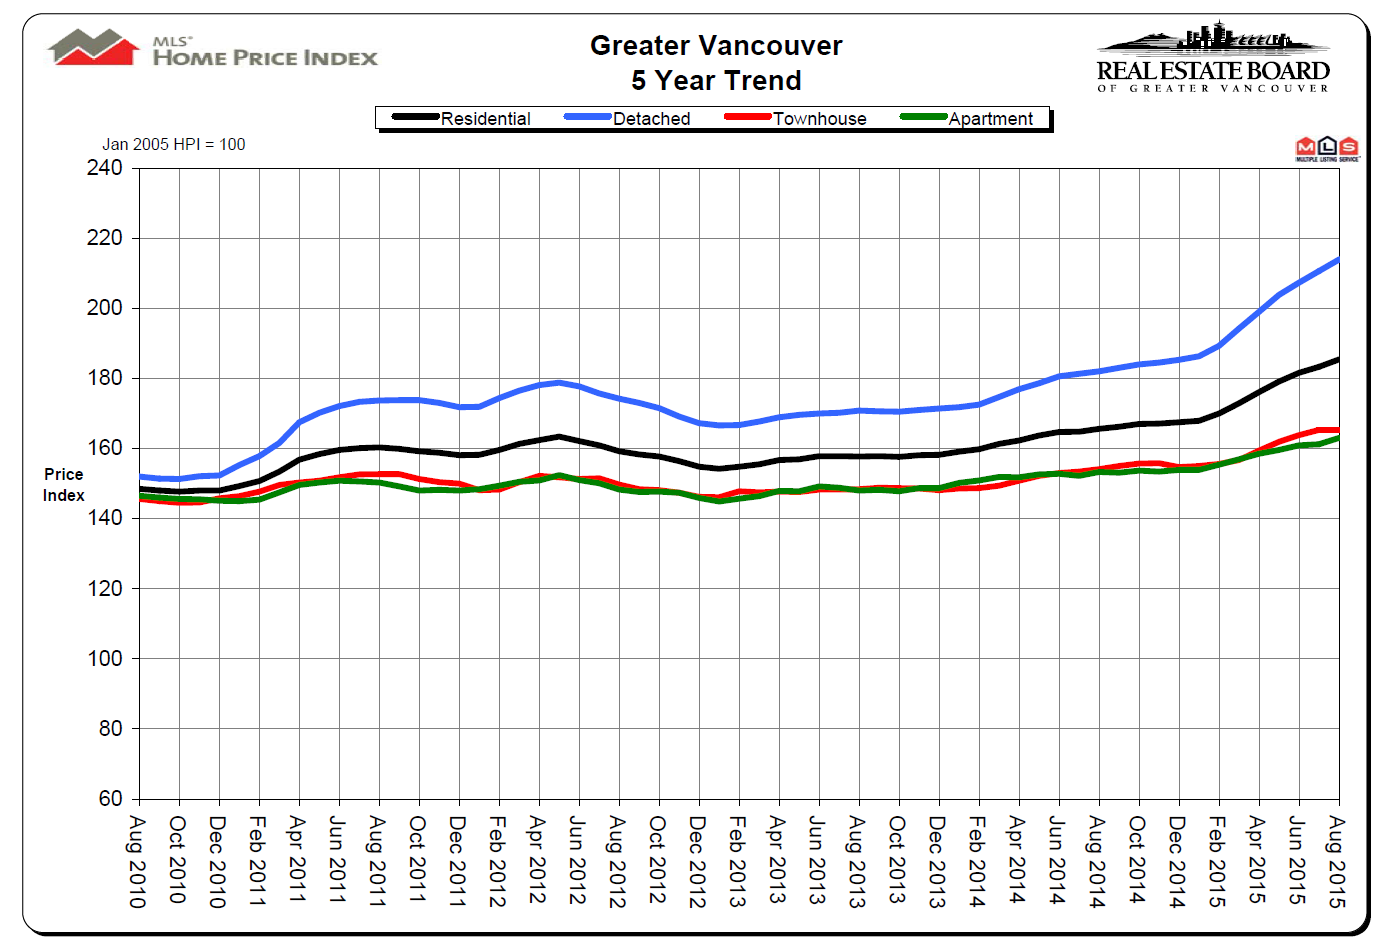 REBGV Vancouver Real Estate Price Chart to August 2015